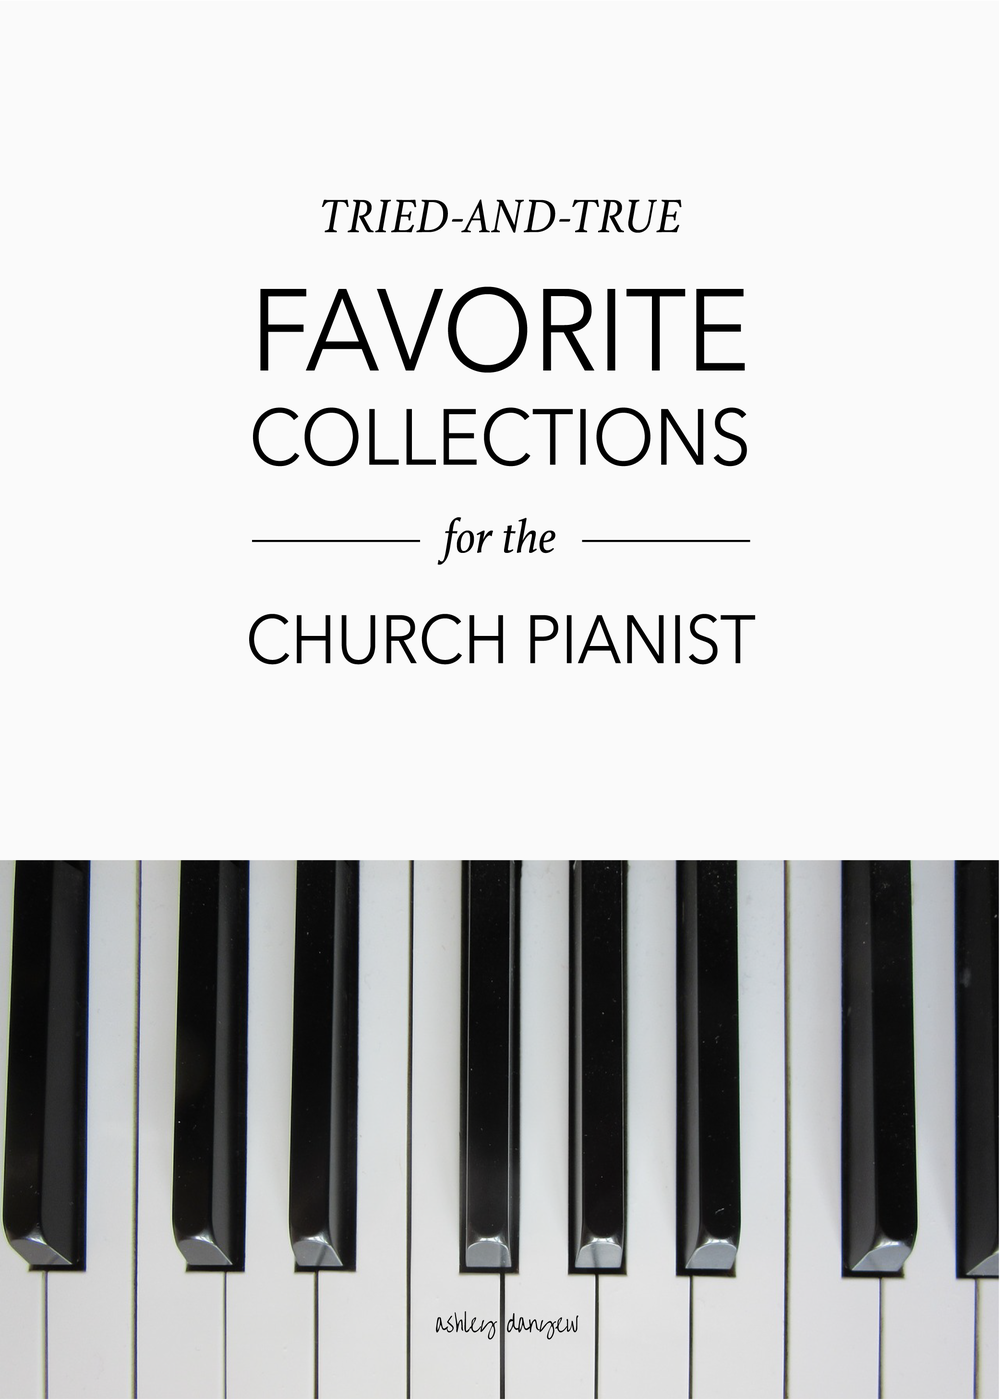 Tried-and-True-Favorite-Collections-for-the-Church-Pianist-01.png